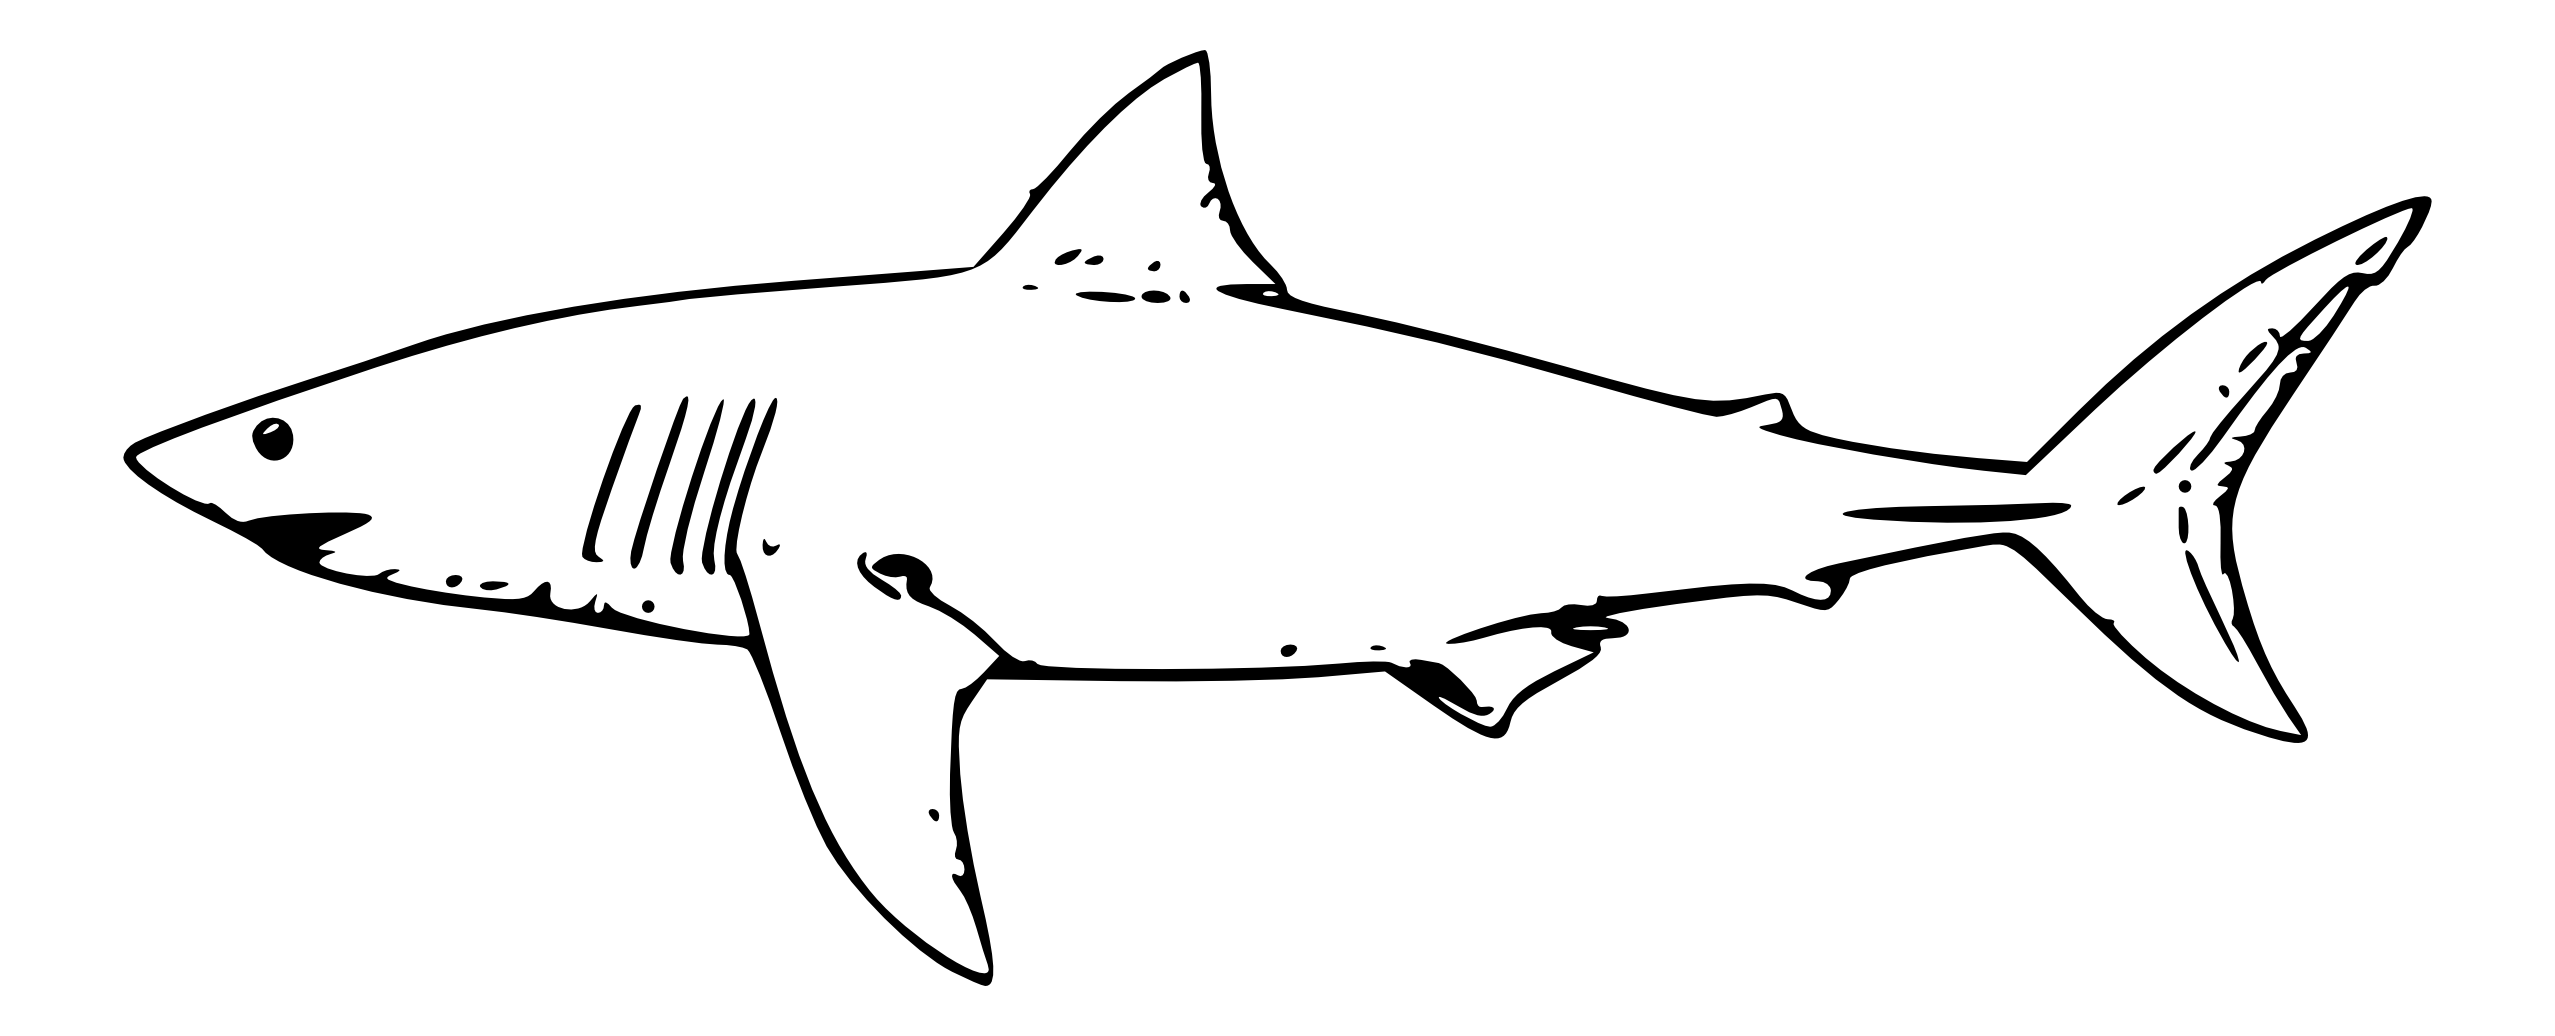 Drawing shark gills. Collection of hammerhead